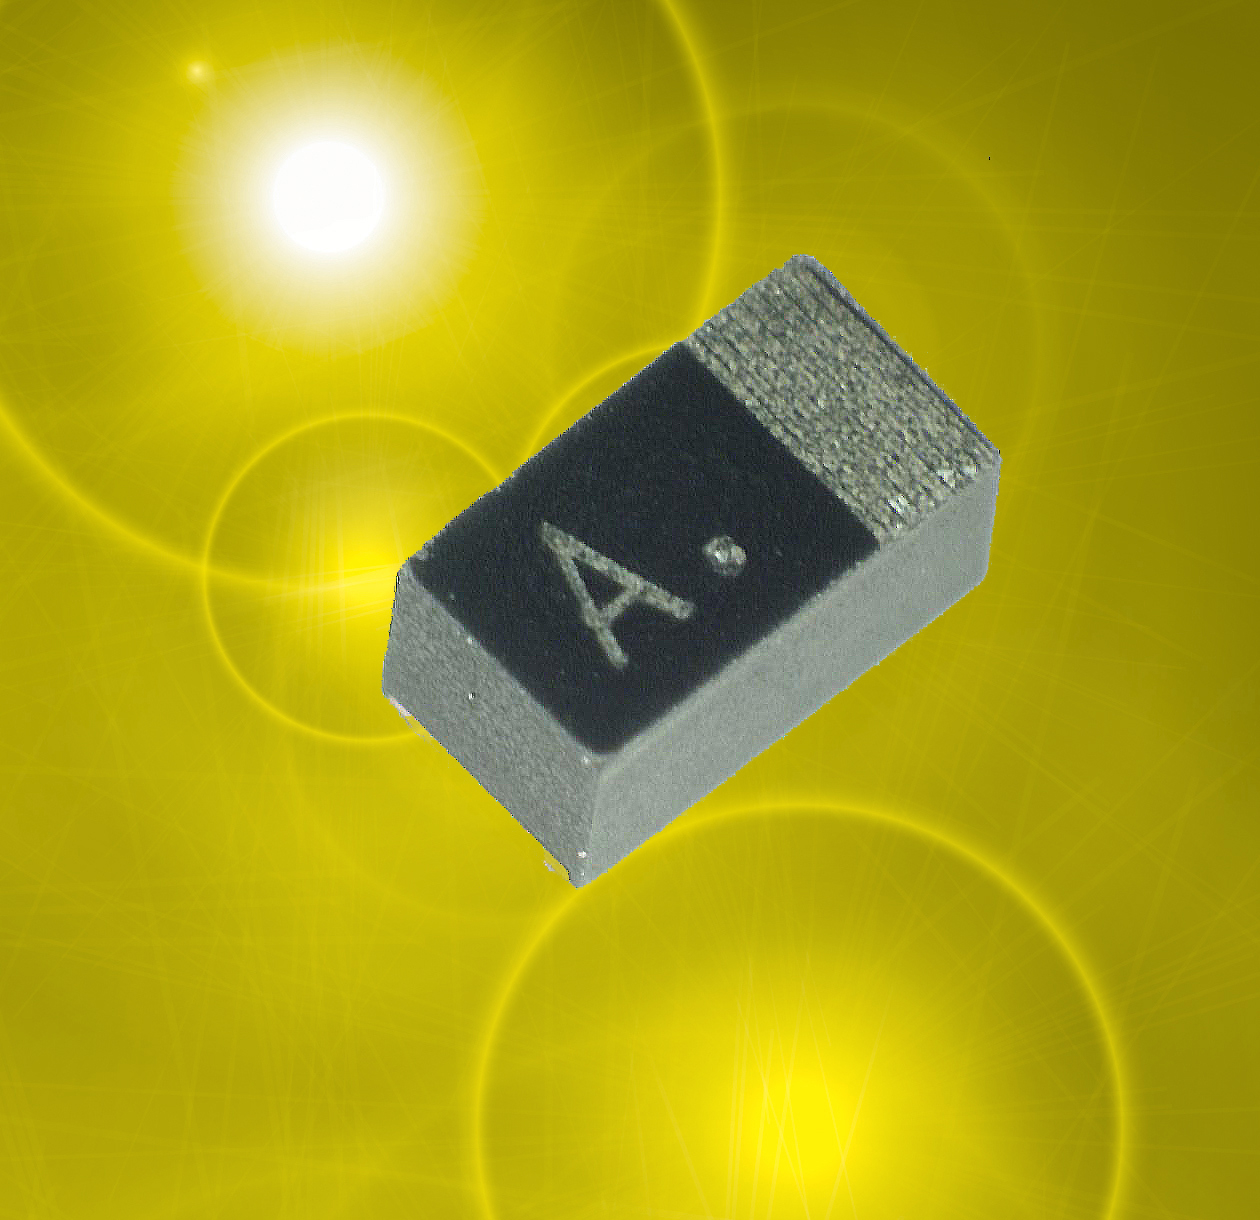 AVX Intros mini frameless tantalum poly capacitors for consumer apps